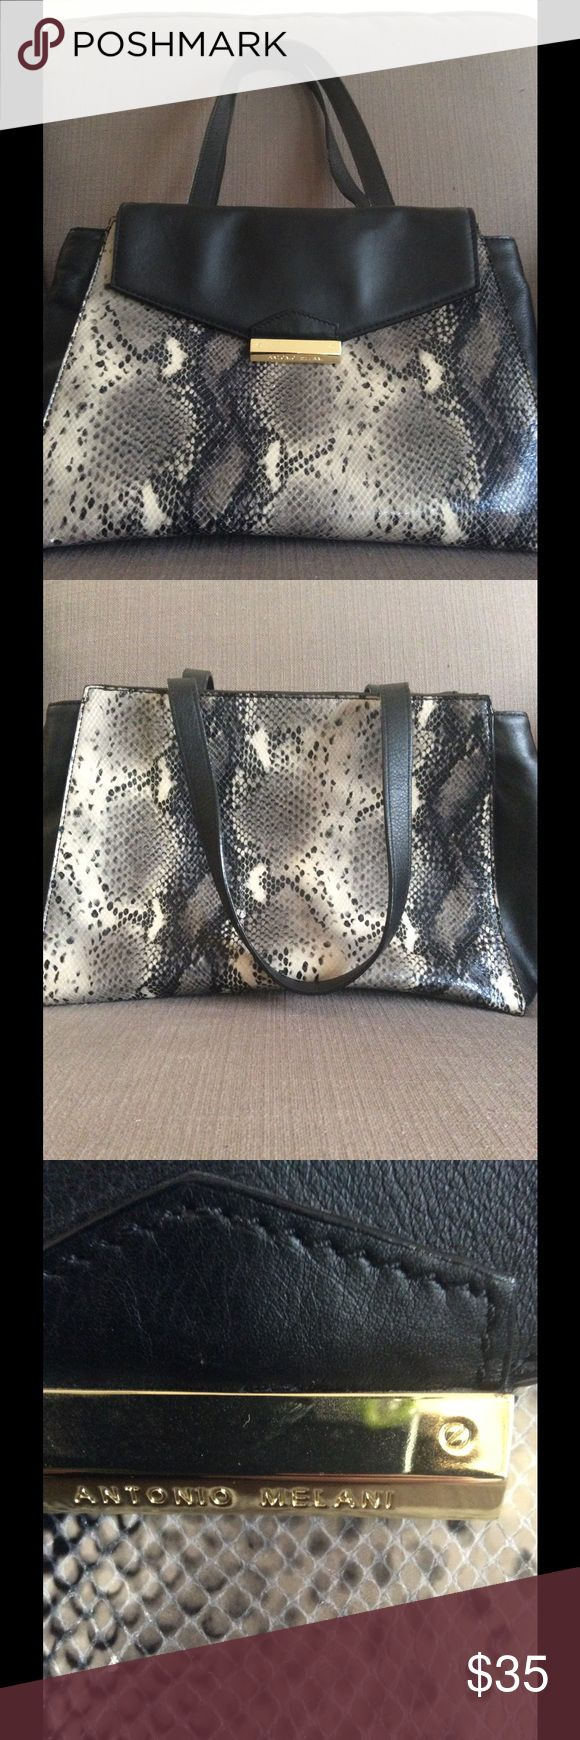 Antonio Melani purse!! Absolutely gorgeous Antonio Melani purse!! Like new! Only carried a few times!!! Bags Satchels